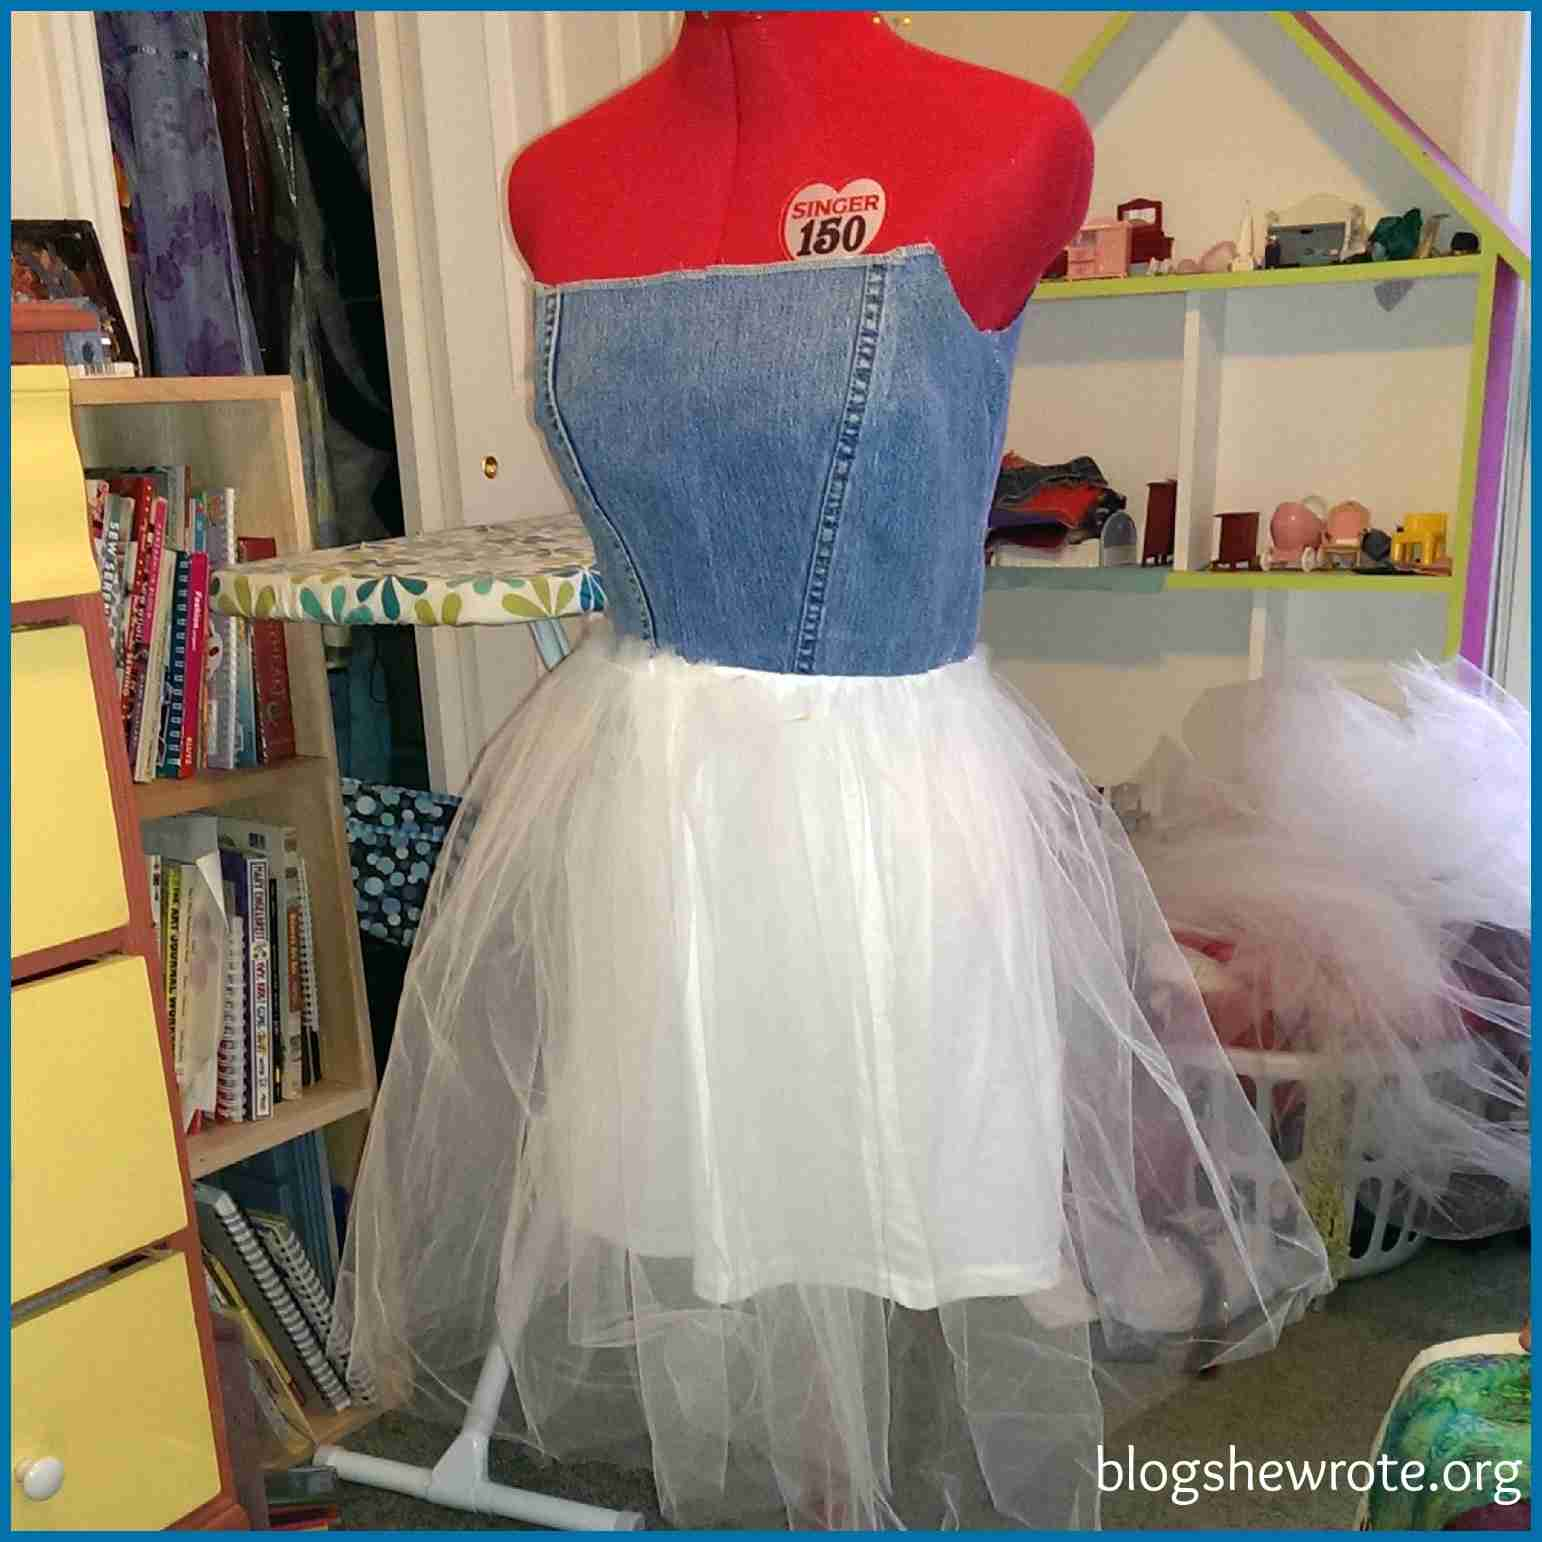 Blog, She Wrote: Eco-Fashion Design Project